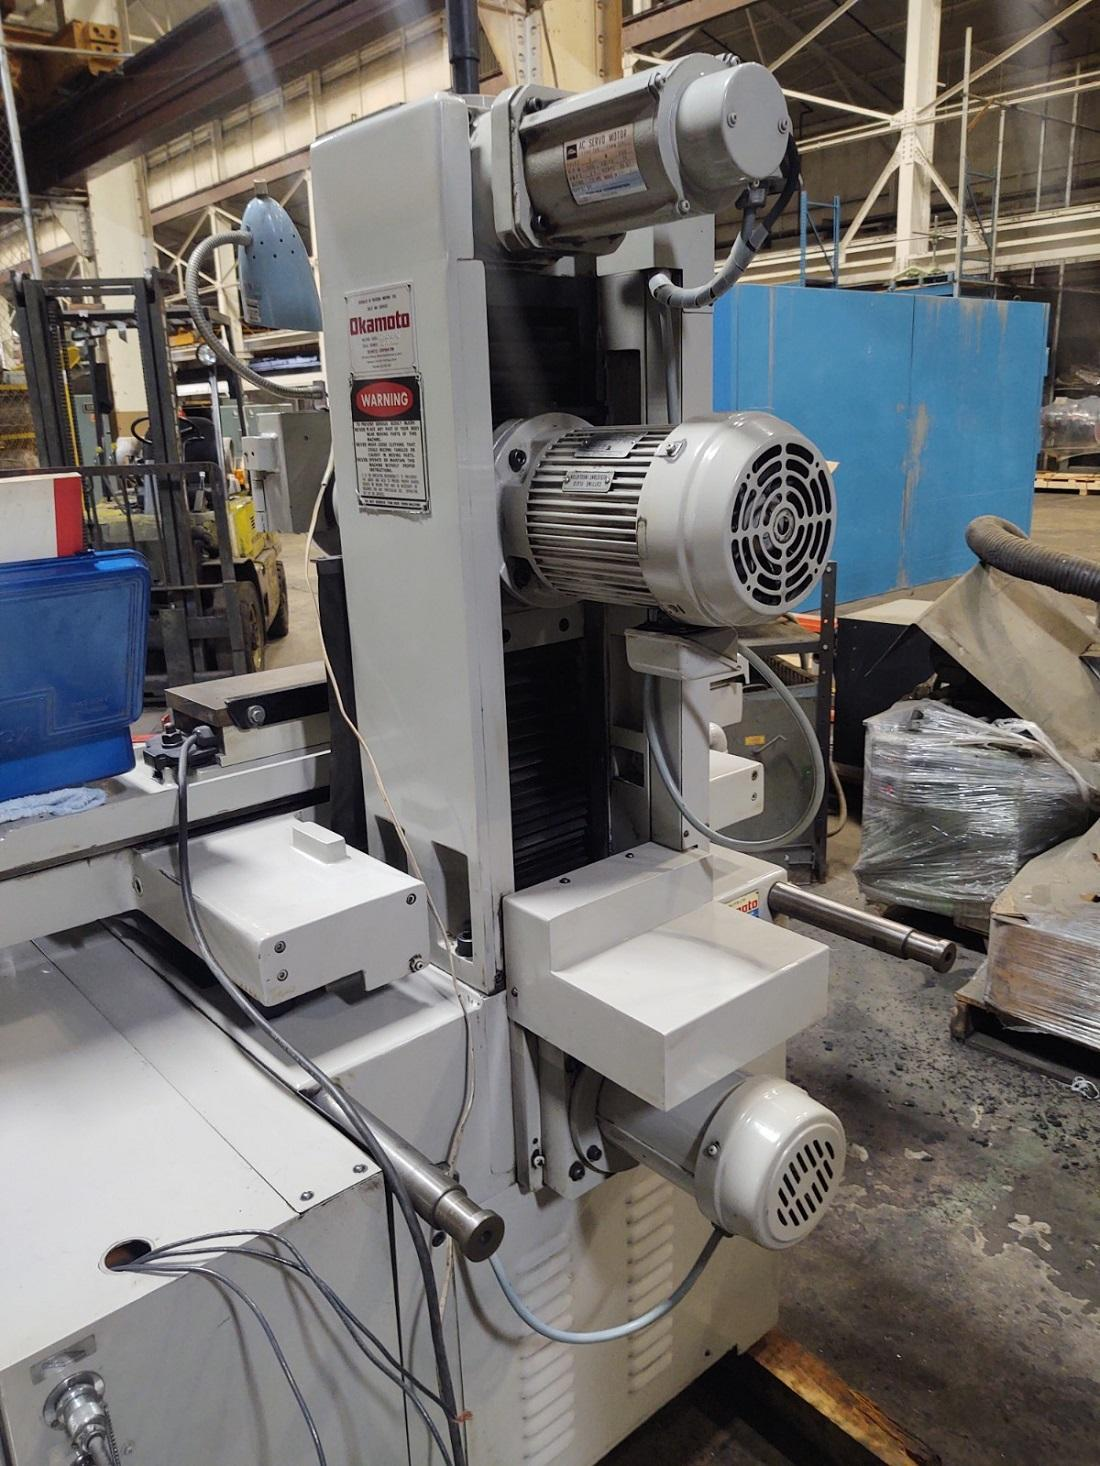 Okamoto 3 Axis Fully Automatic Hydraulic Surface Grinder Model ACC 6-18DX3